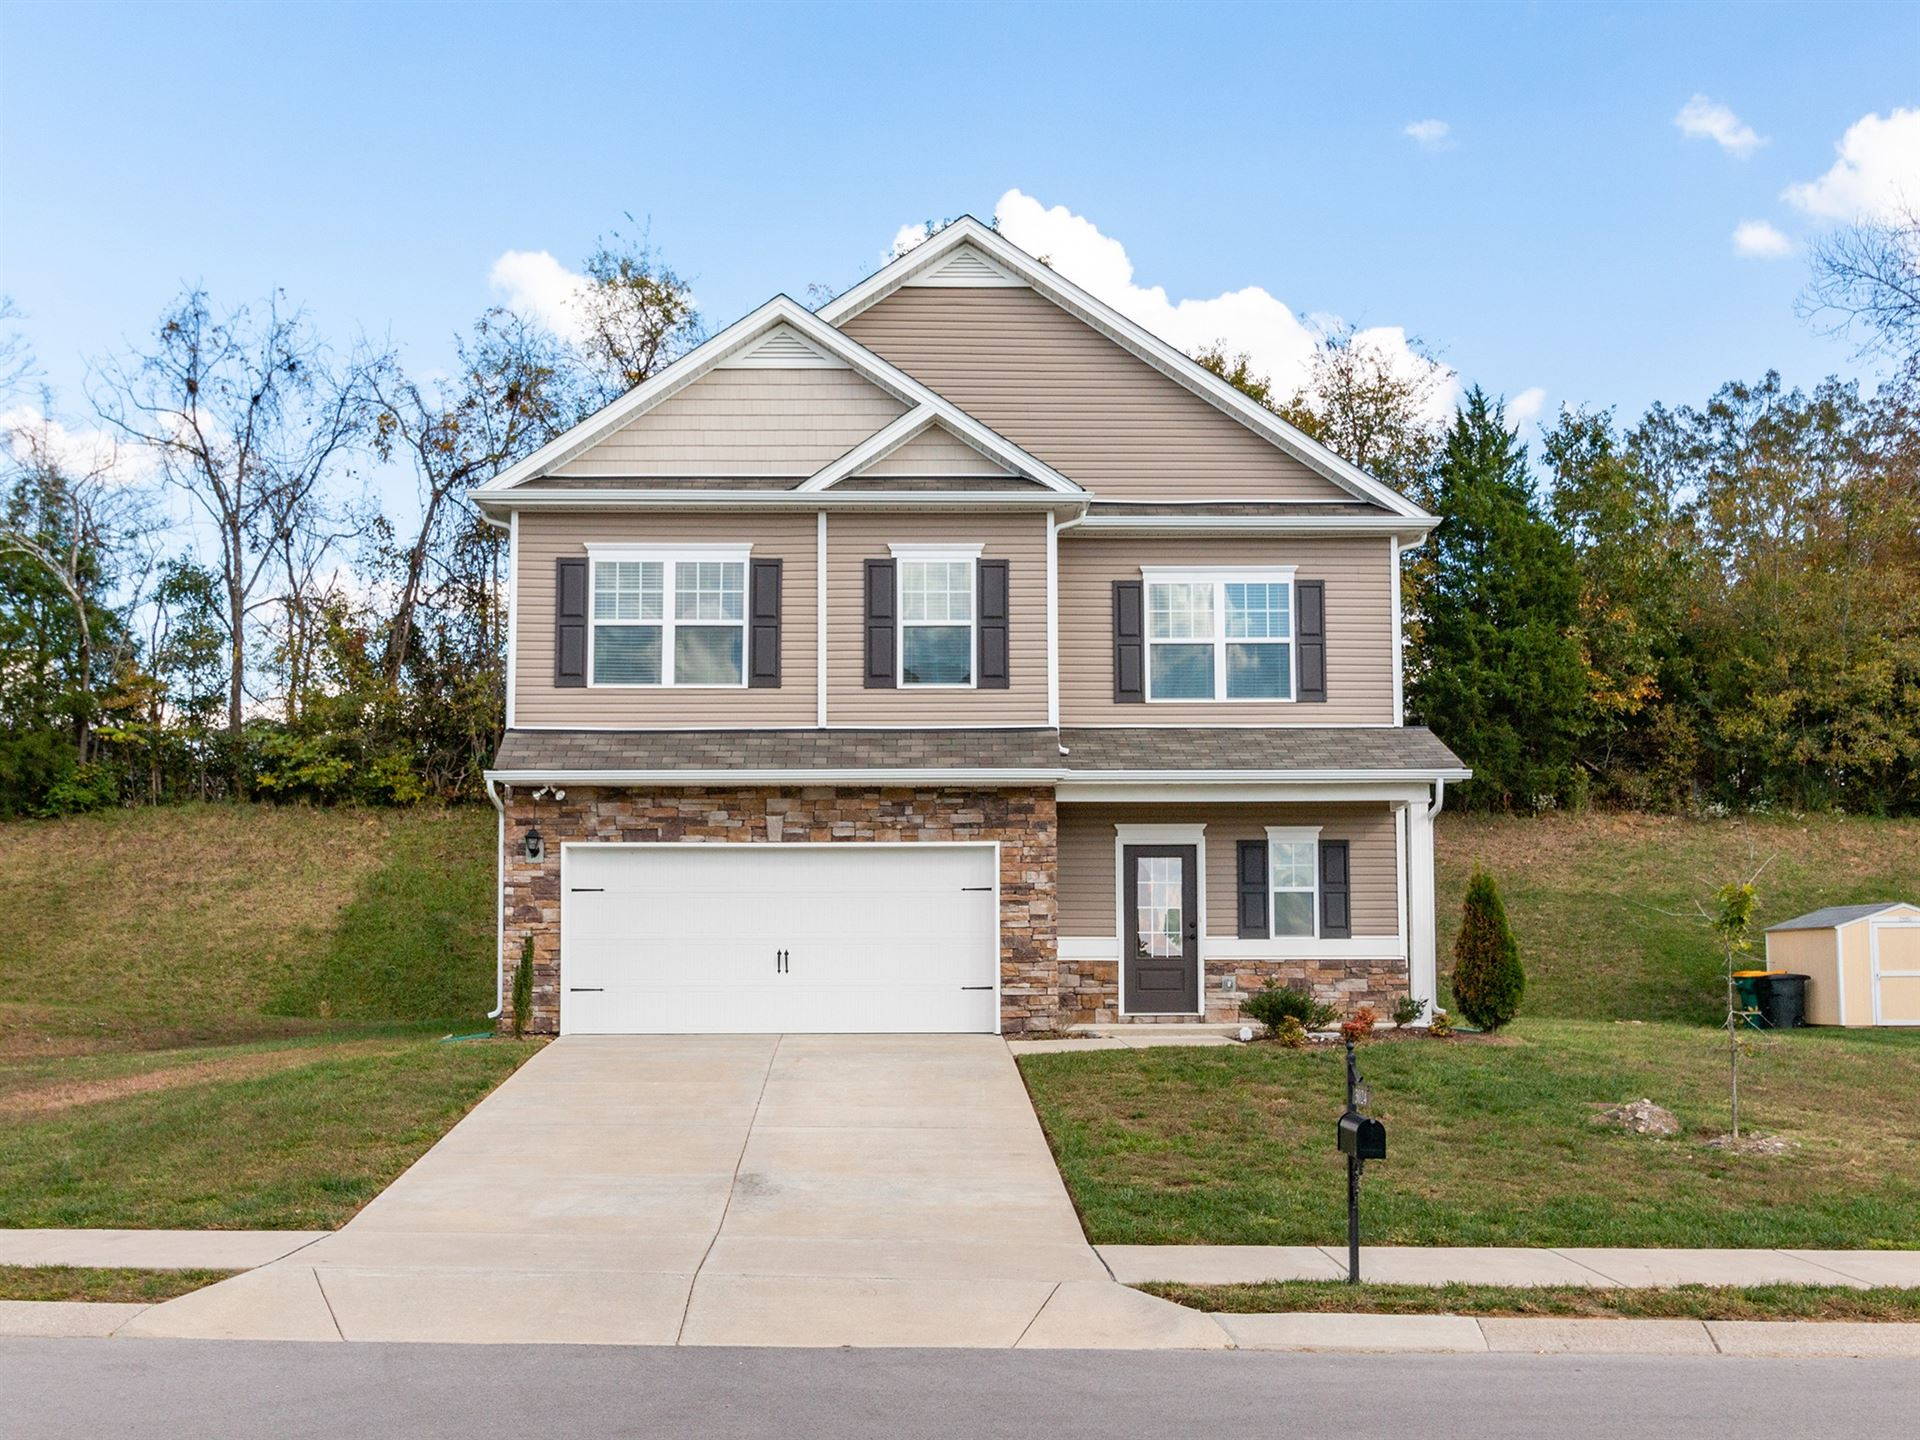 Photo of 3024 Dove Ct N, Spring Hill, TN 37174 (MLS # 2199779)